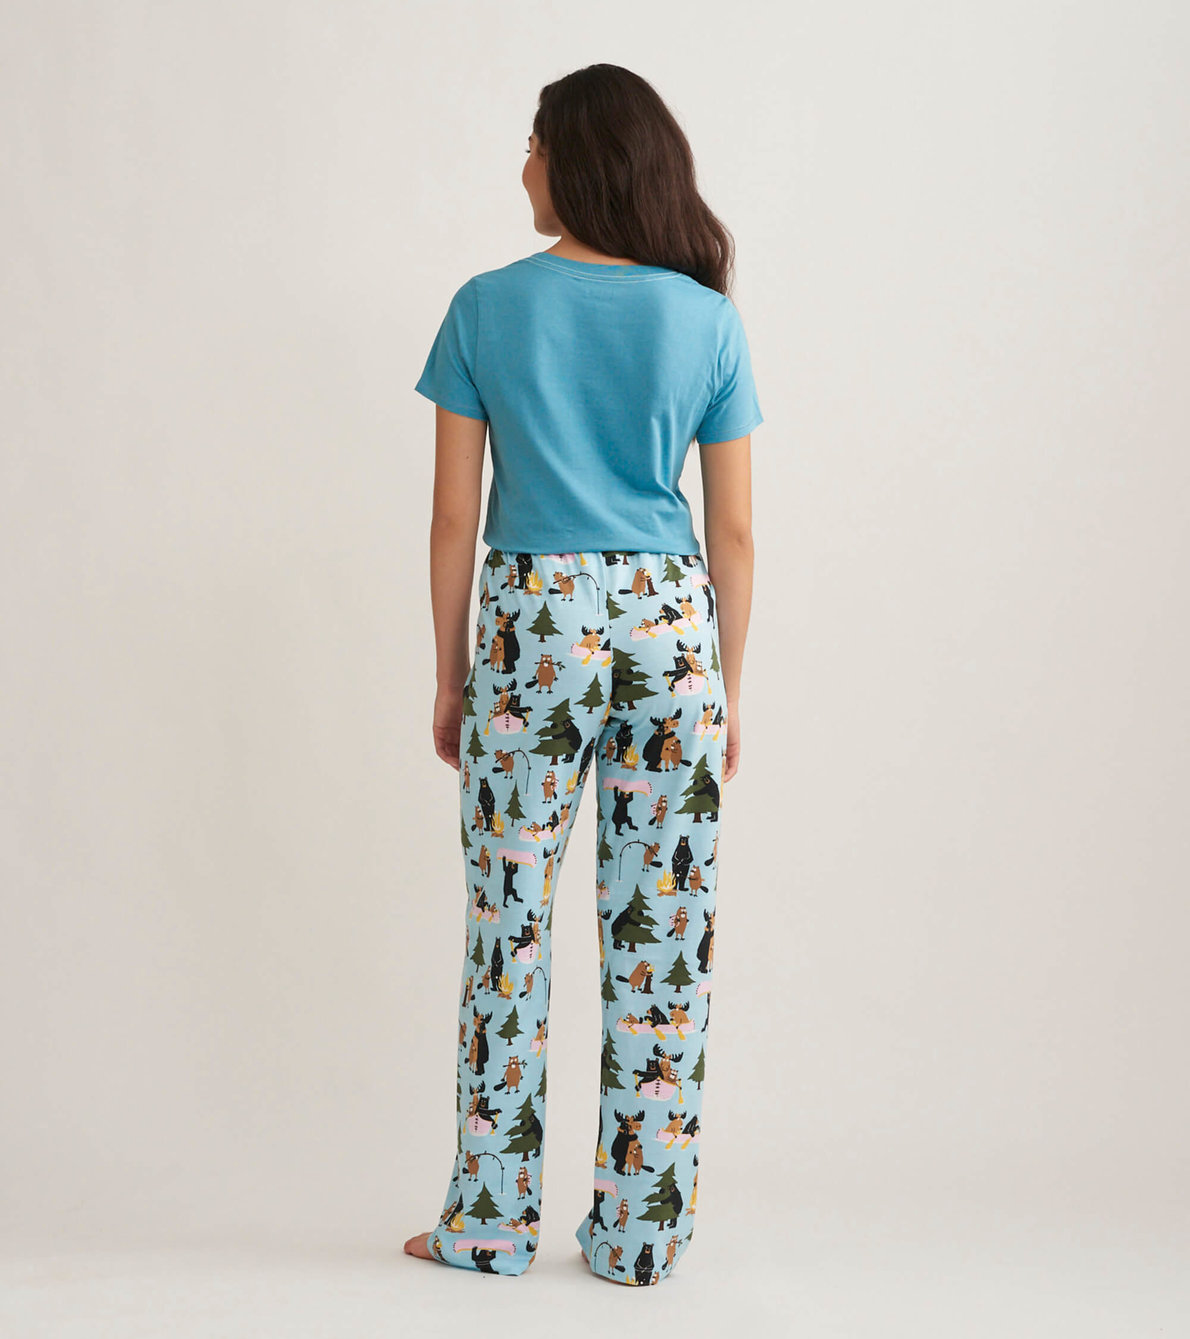 View larger image of Life in the Wild Women's Jersey Pajama Pants